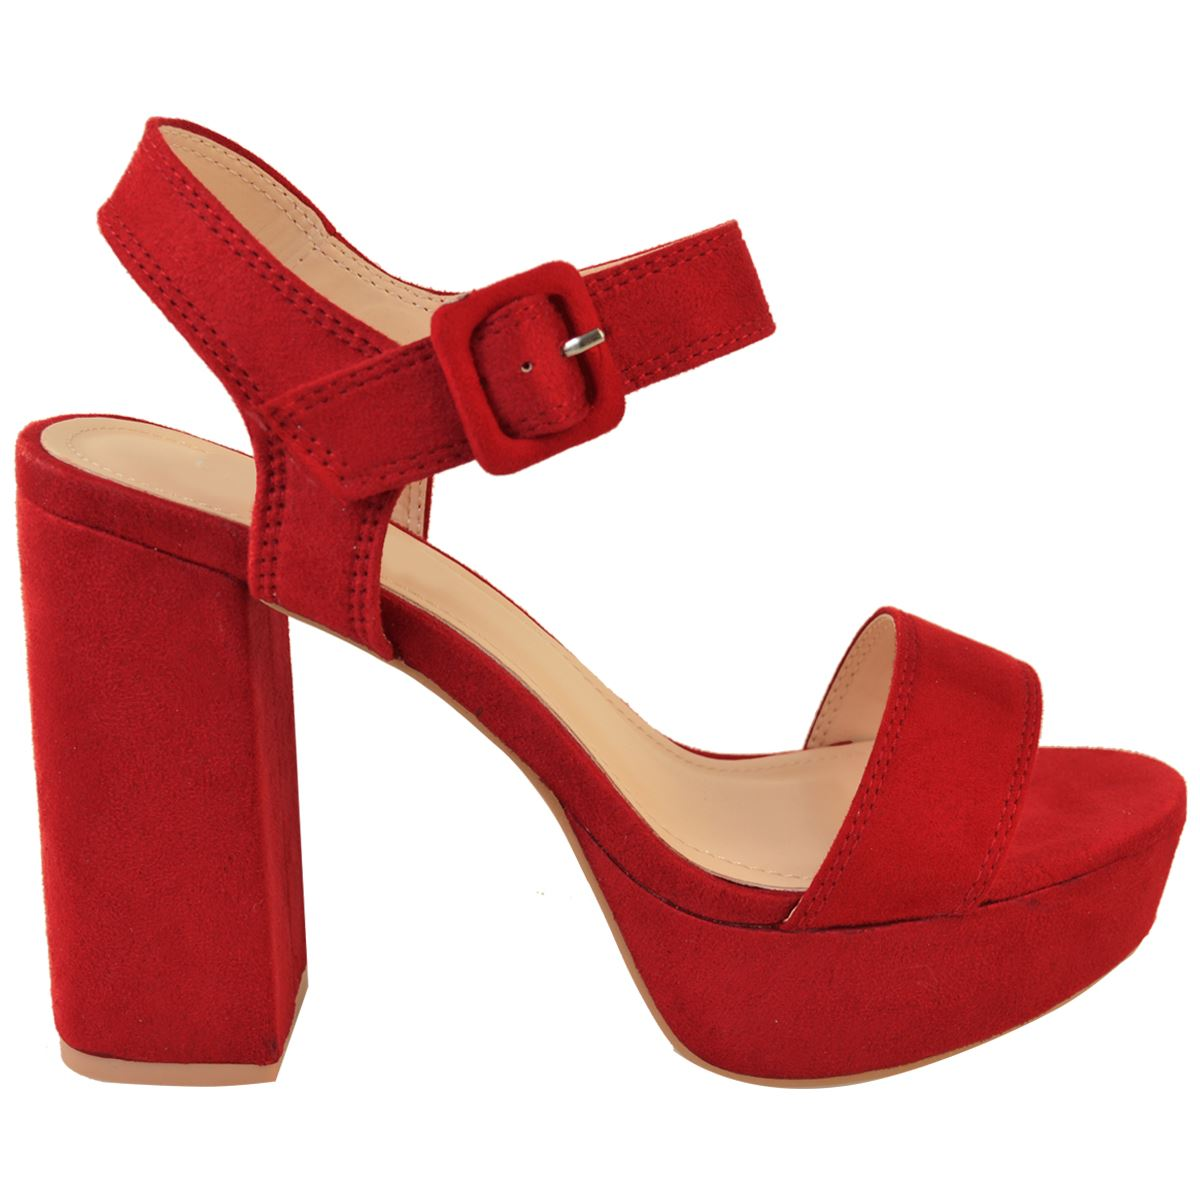 New-Womens-Summer-Platform-High-Heel-Sandals-Ladies-Open-Toe-Strappy-Party-Shoes thumbnail 39